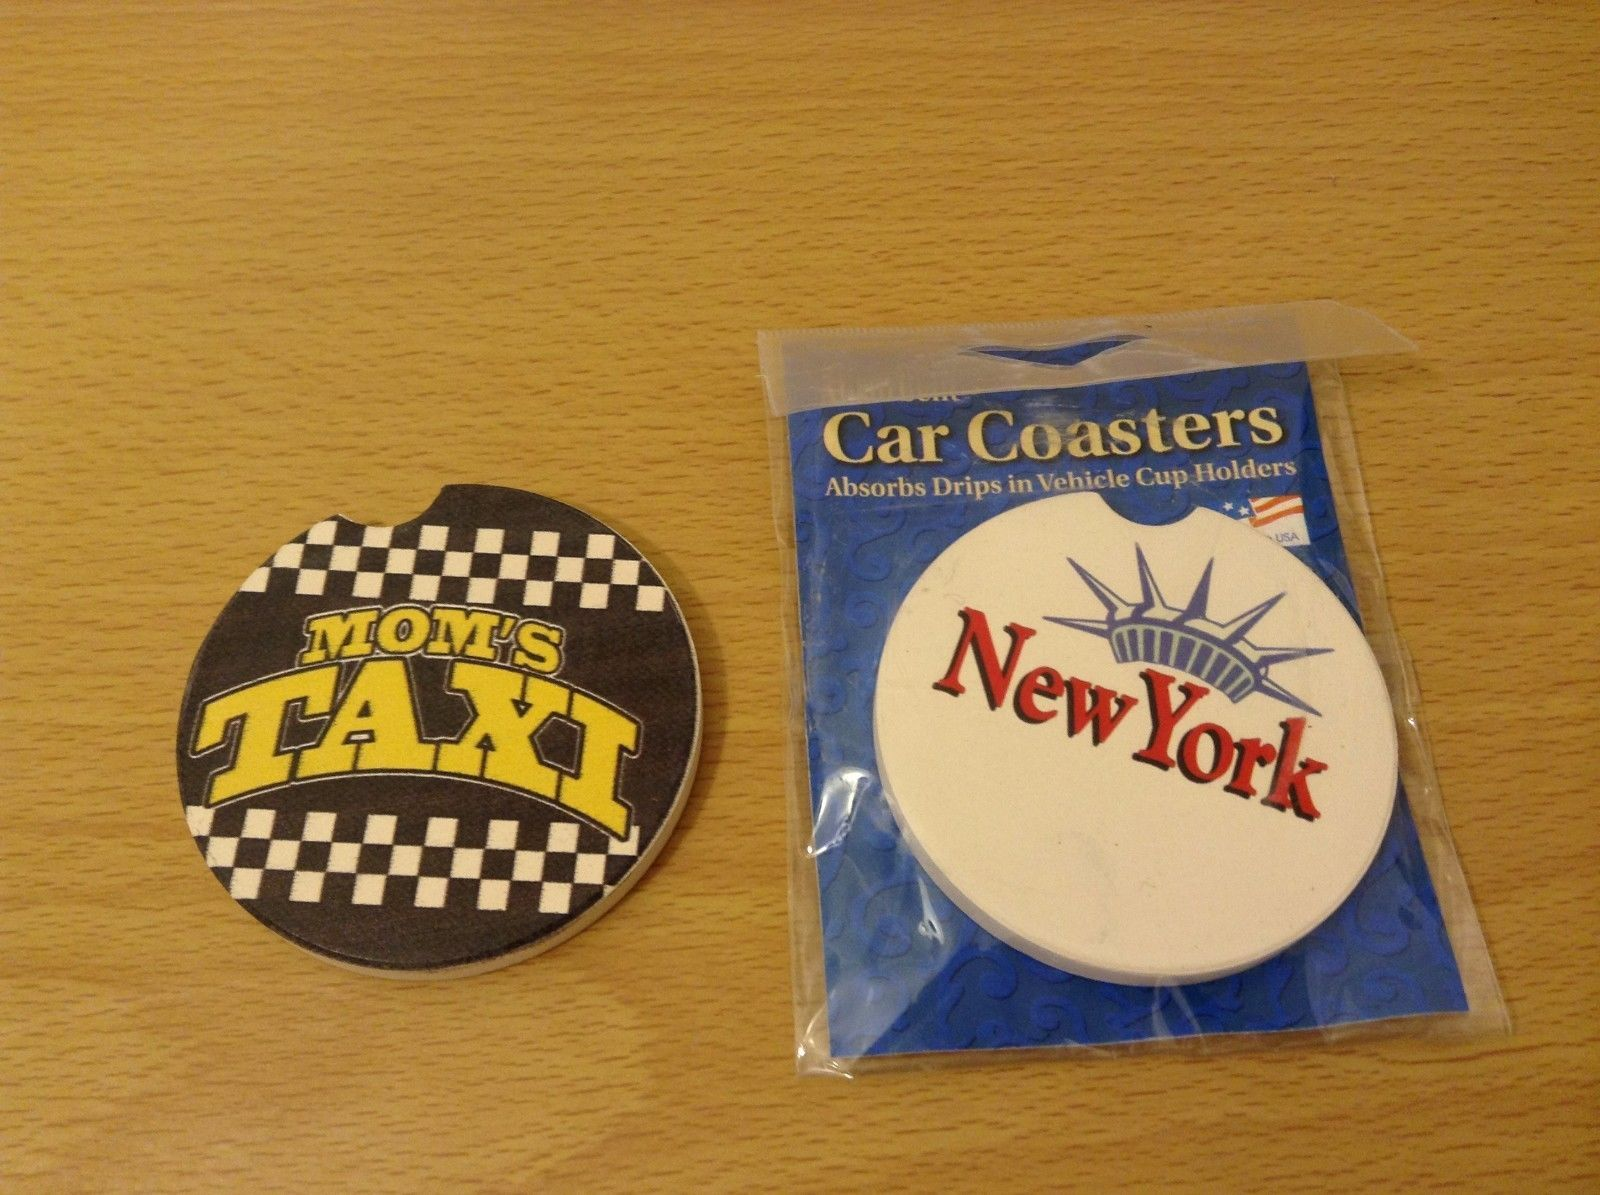 Counter Art Absorbent Stoneware Car Coasters Set of 2 New York and Mom's Taxi